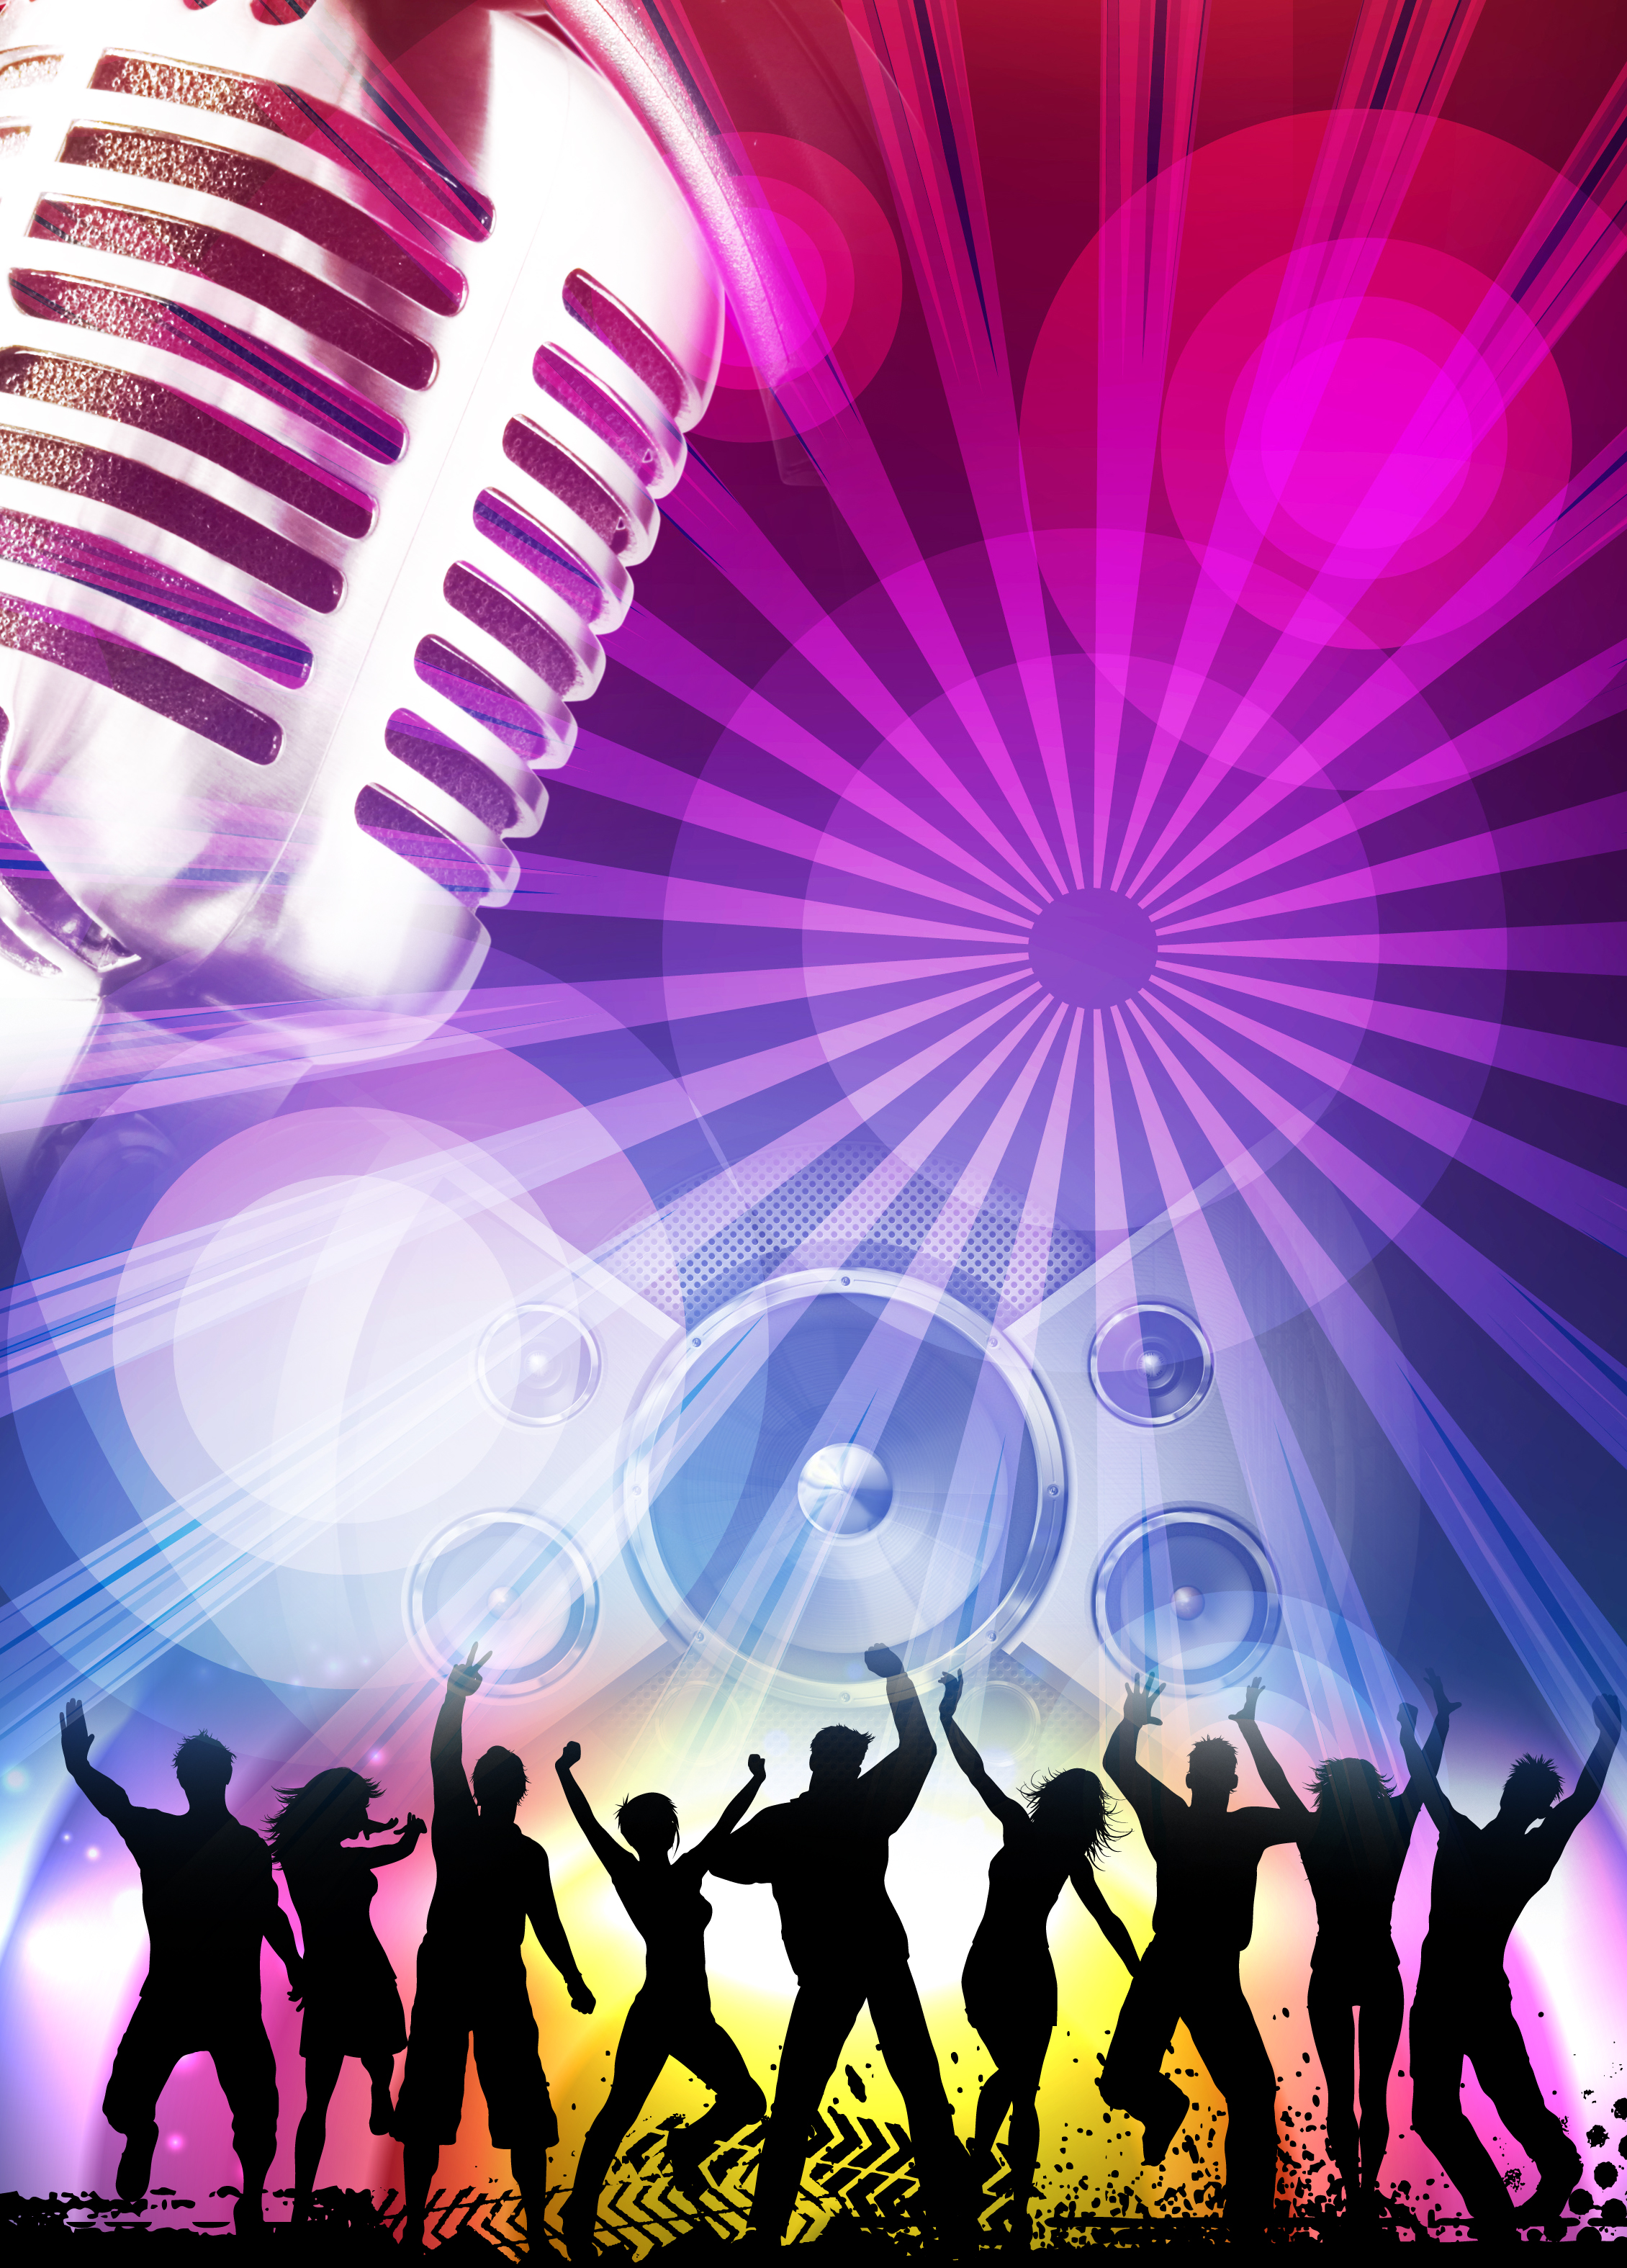 music poster background material  music  dream  creative